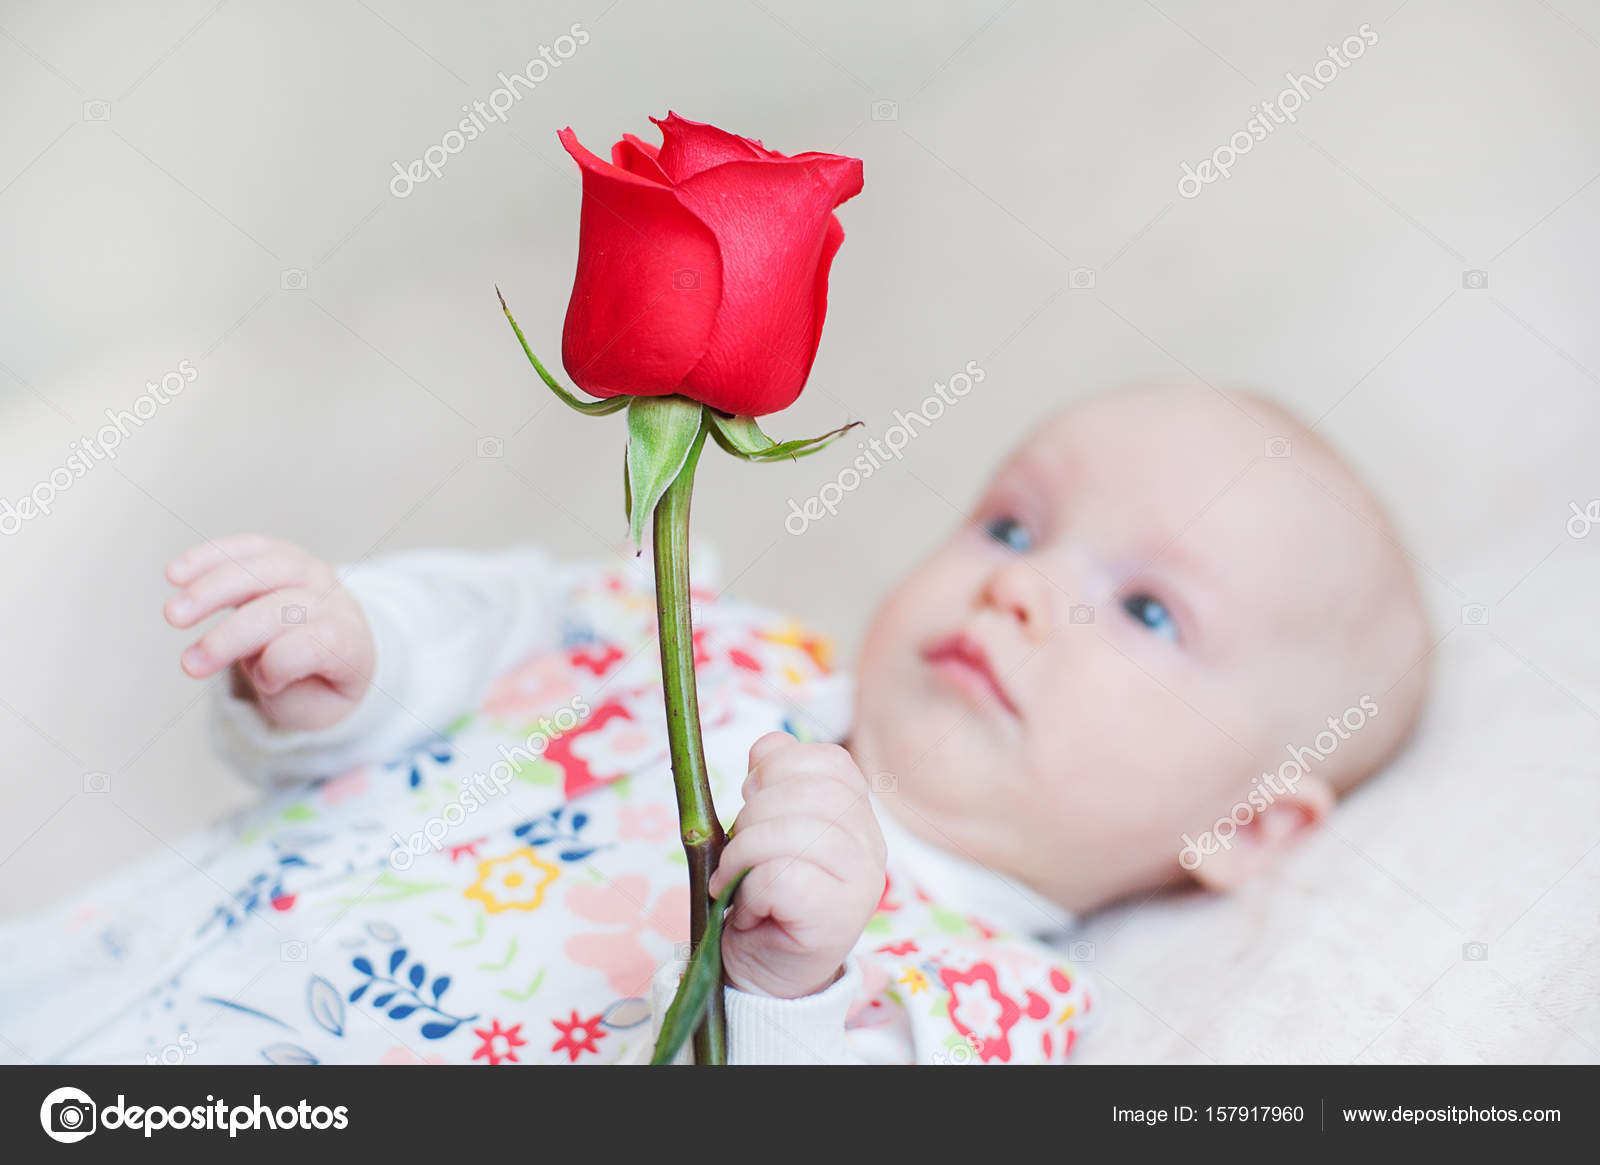 Cute Baby Holding Flowers Cute Baby Girl Holding A Bouquet Of Flowers Rose Stock Photo C Photodiod Gmail Com 157917960